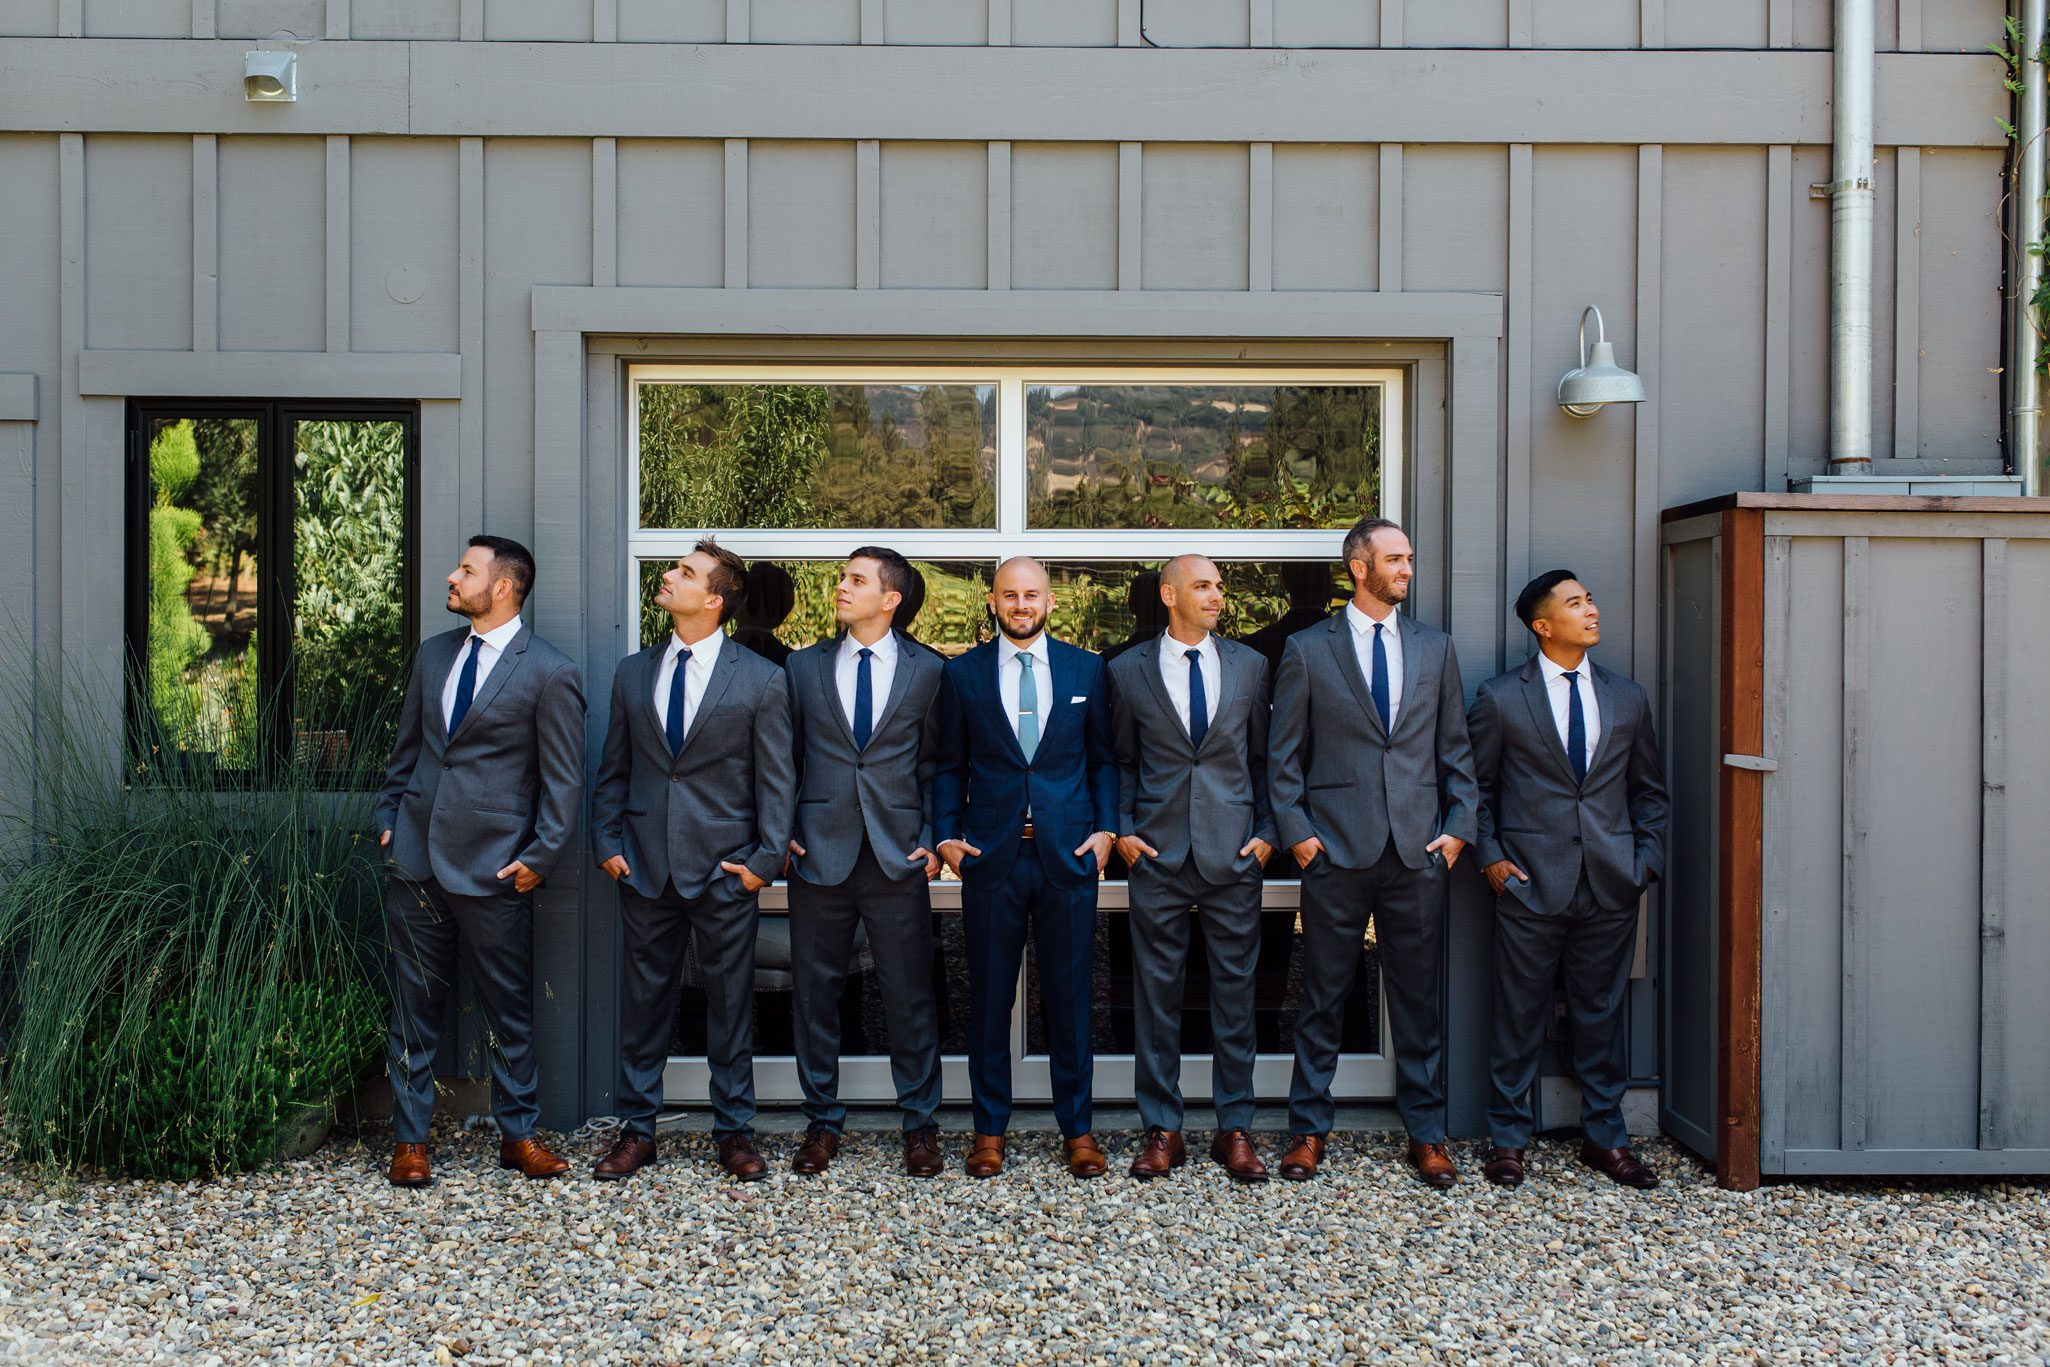 Groomsmen - A Romantic Backyard Wedding in Wine Country, Napa Valley California